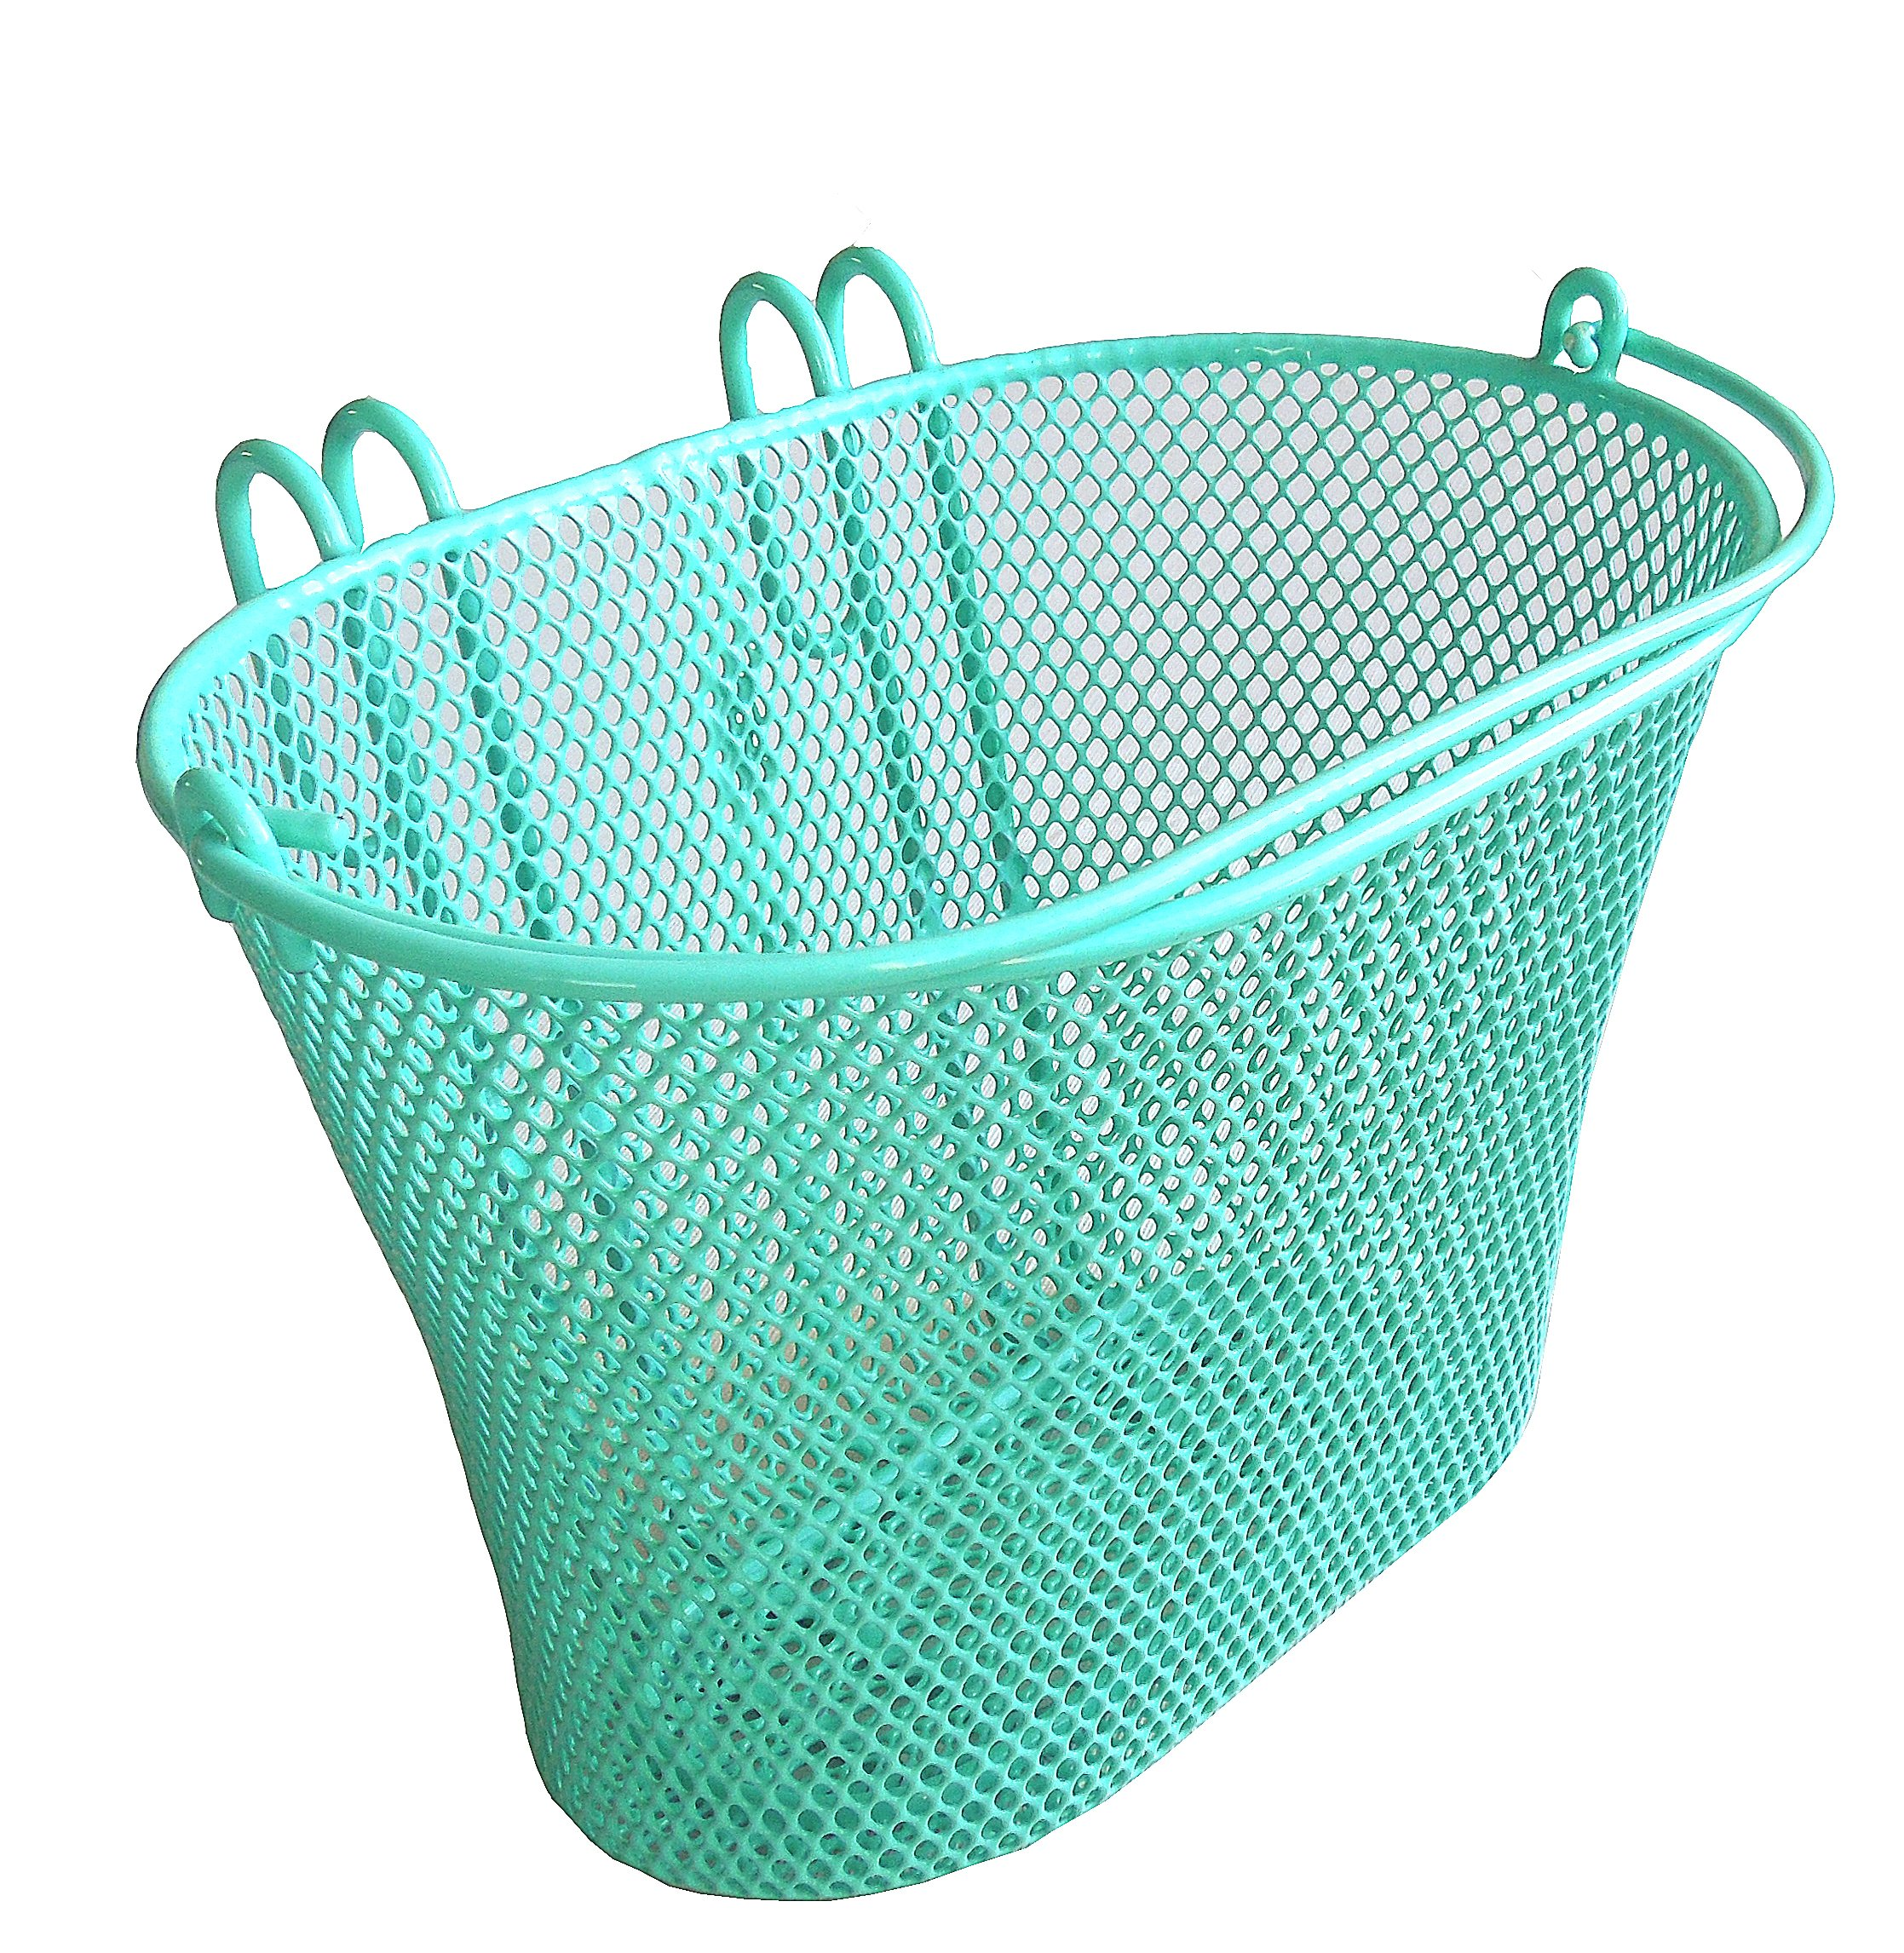 Biria CITY Hook Green Child's Bicycle Basket